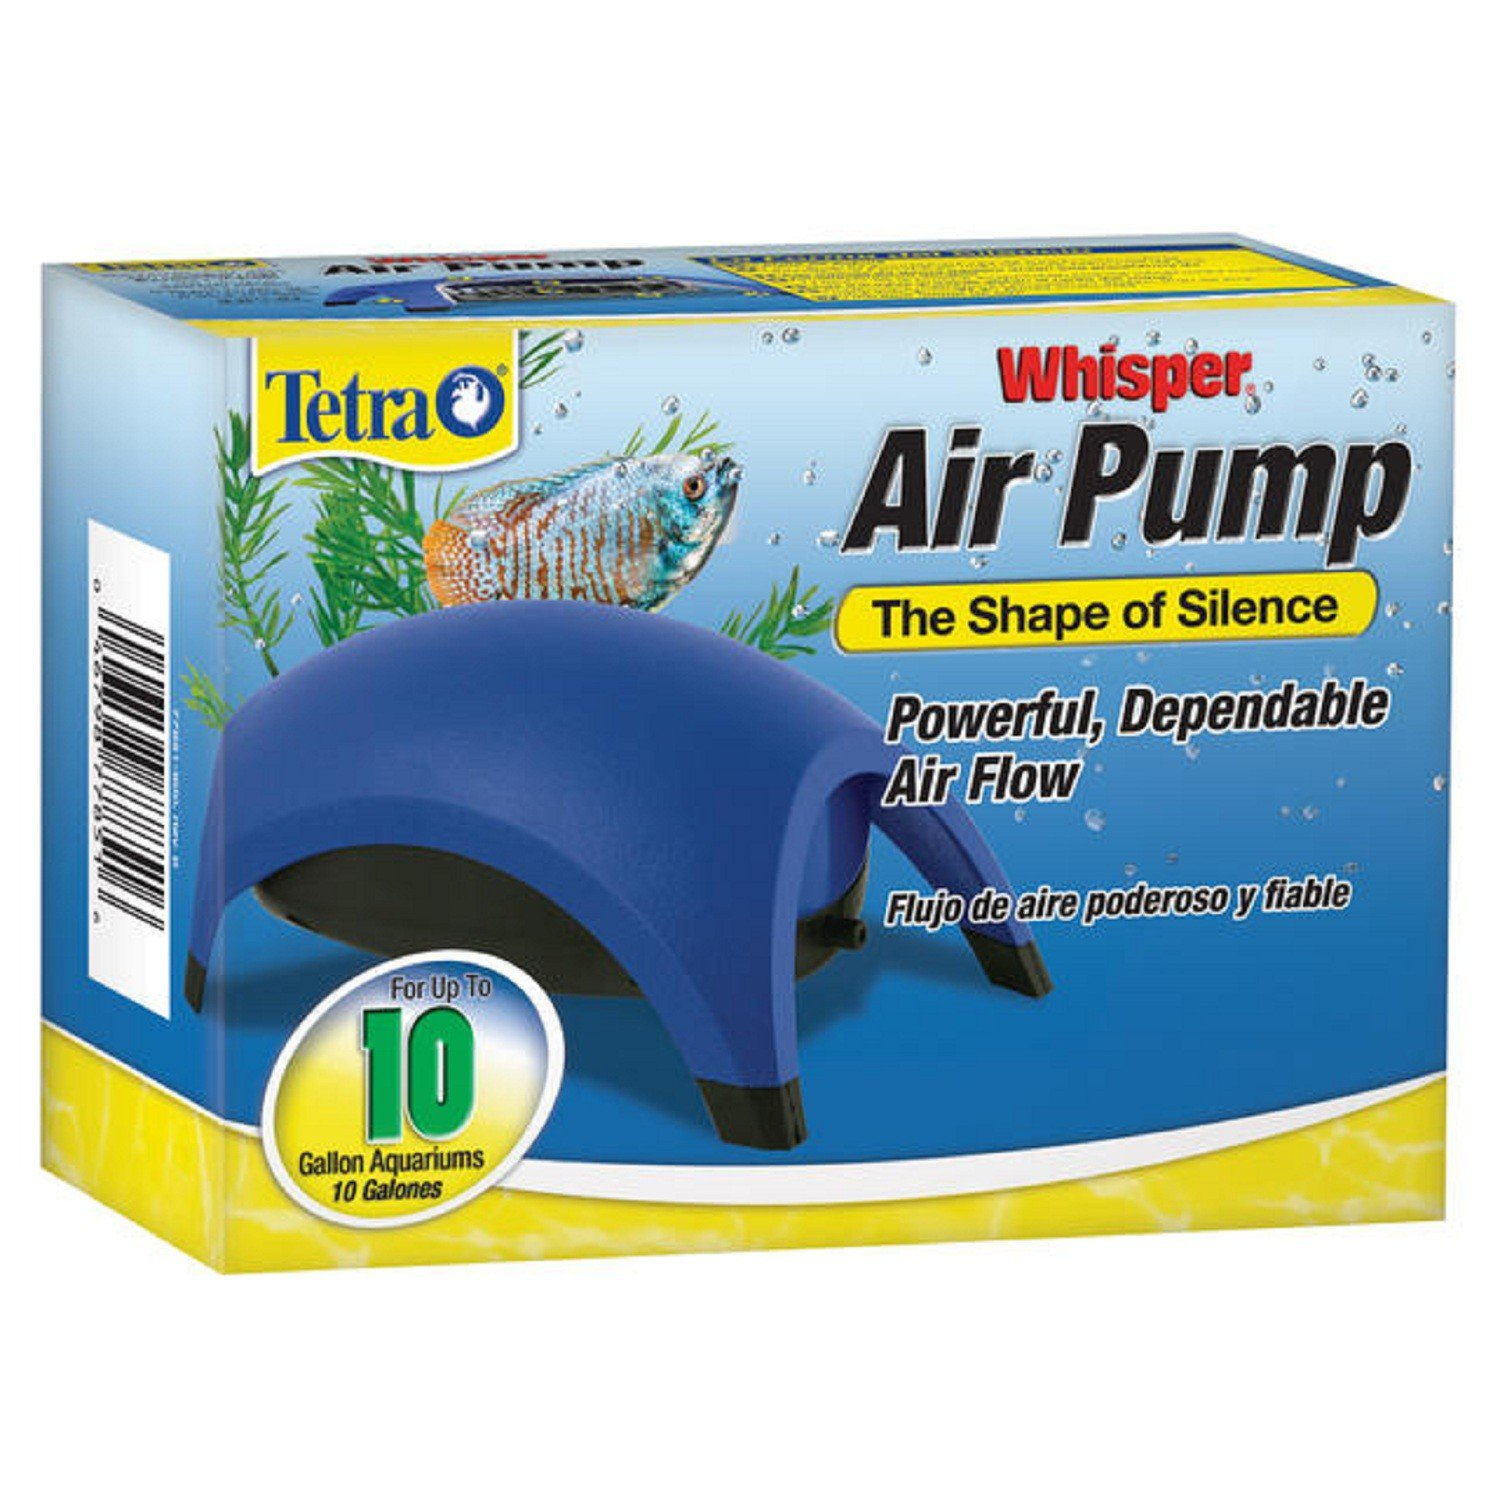 Tetra whisper aquarium air pump for 10 gallon aquariums for Tetra fish tanks